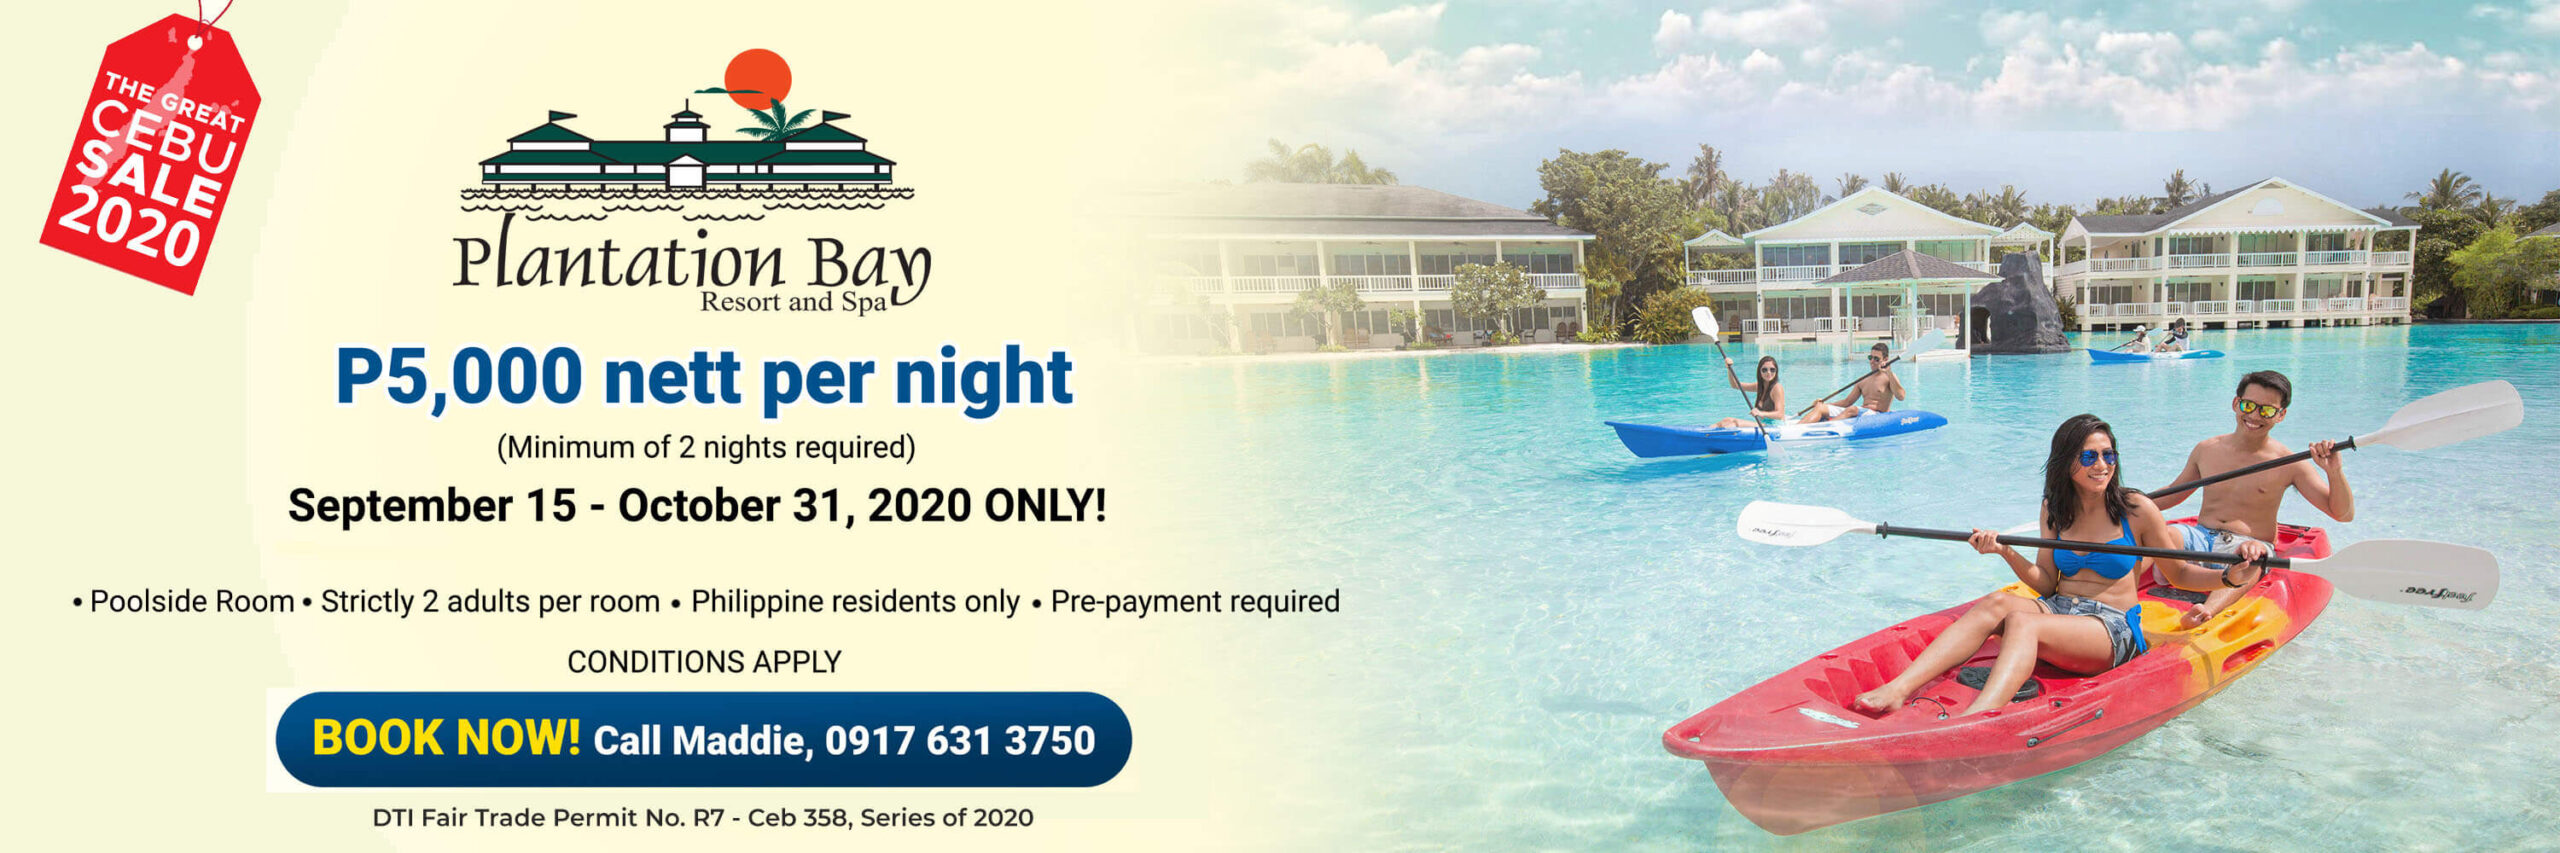 Plantation Bay offers poolside room package